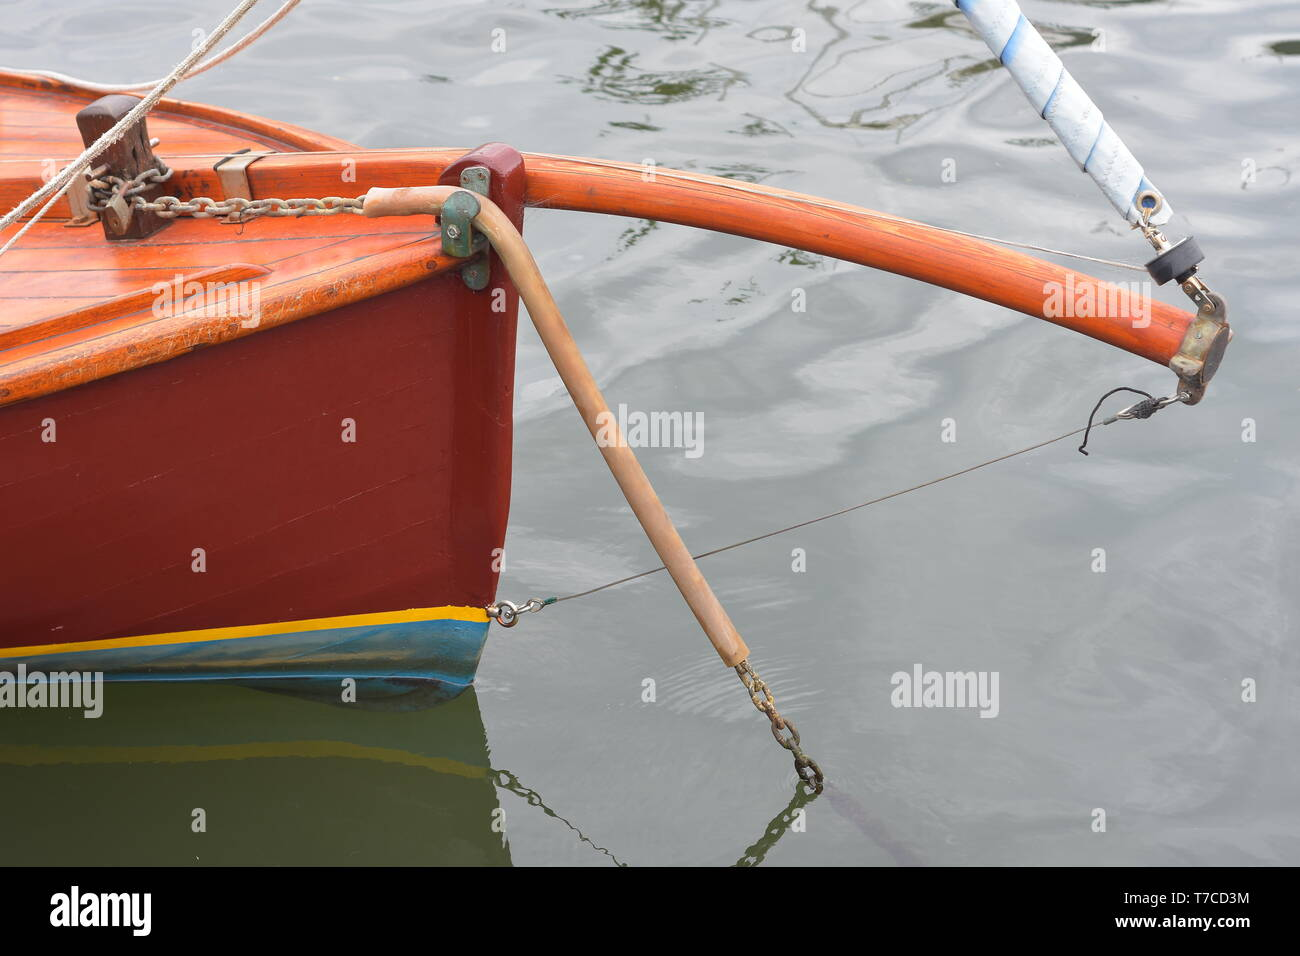 Bow and bent bowsprit with furling headsail of small planked wooden sailing boat on mooring. - Stock Image